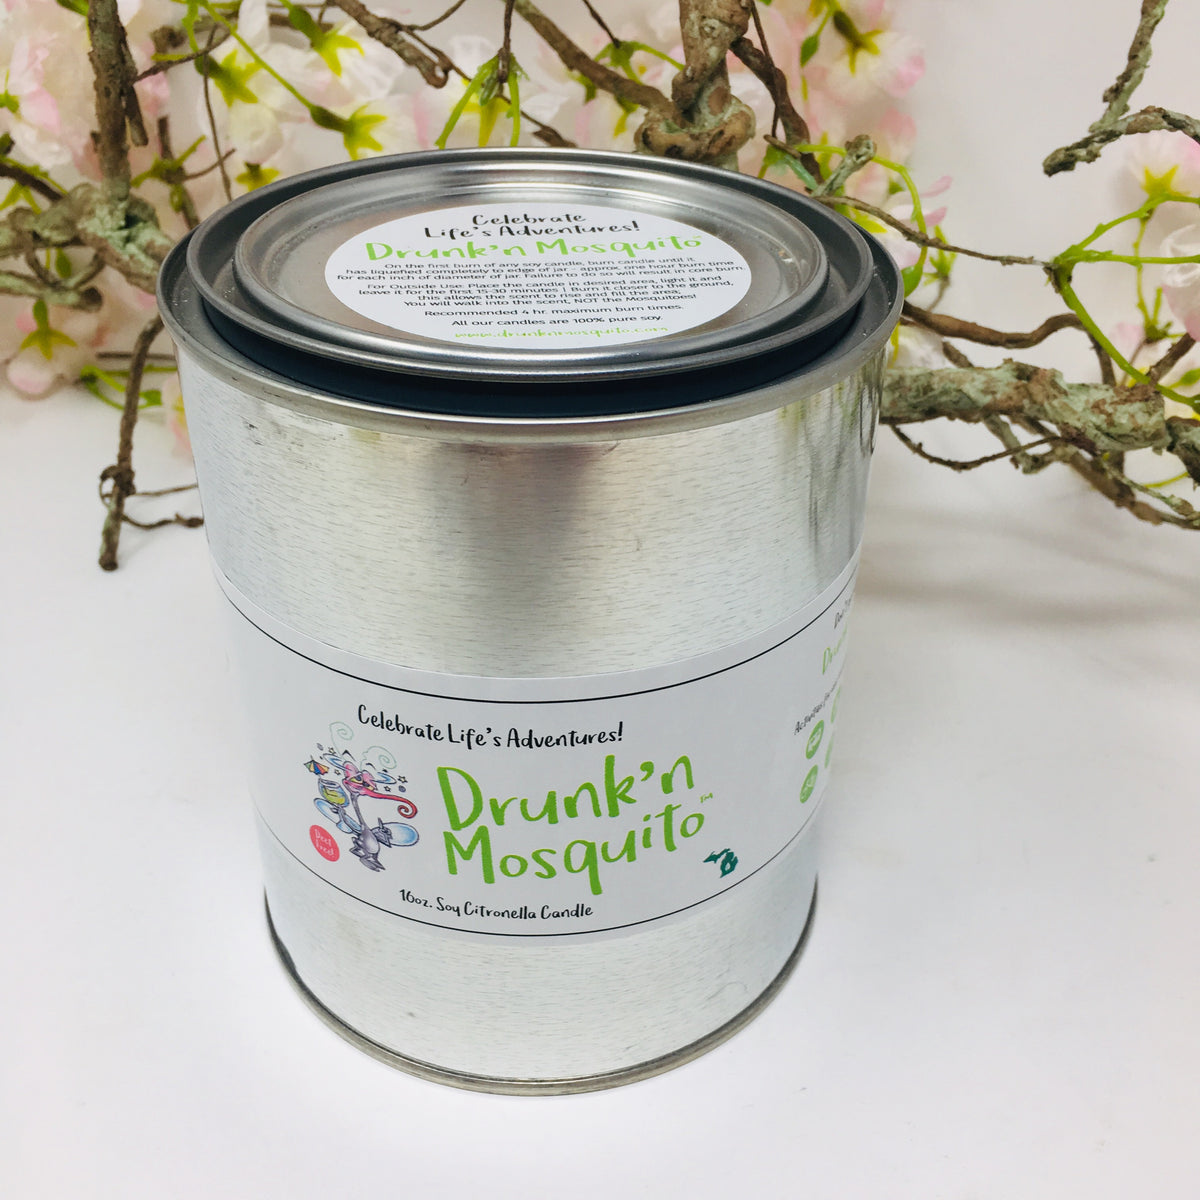 Drunk'n Mosquito 16 oz Tin Candle